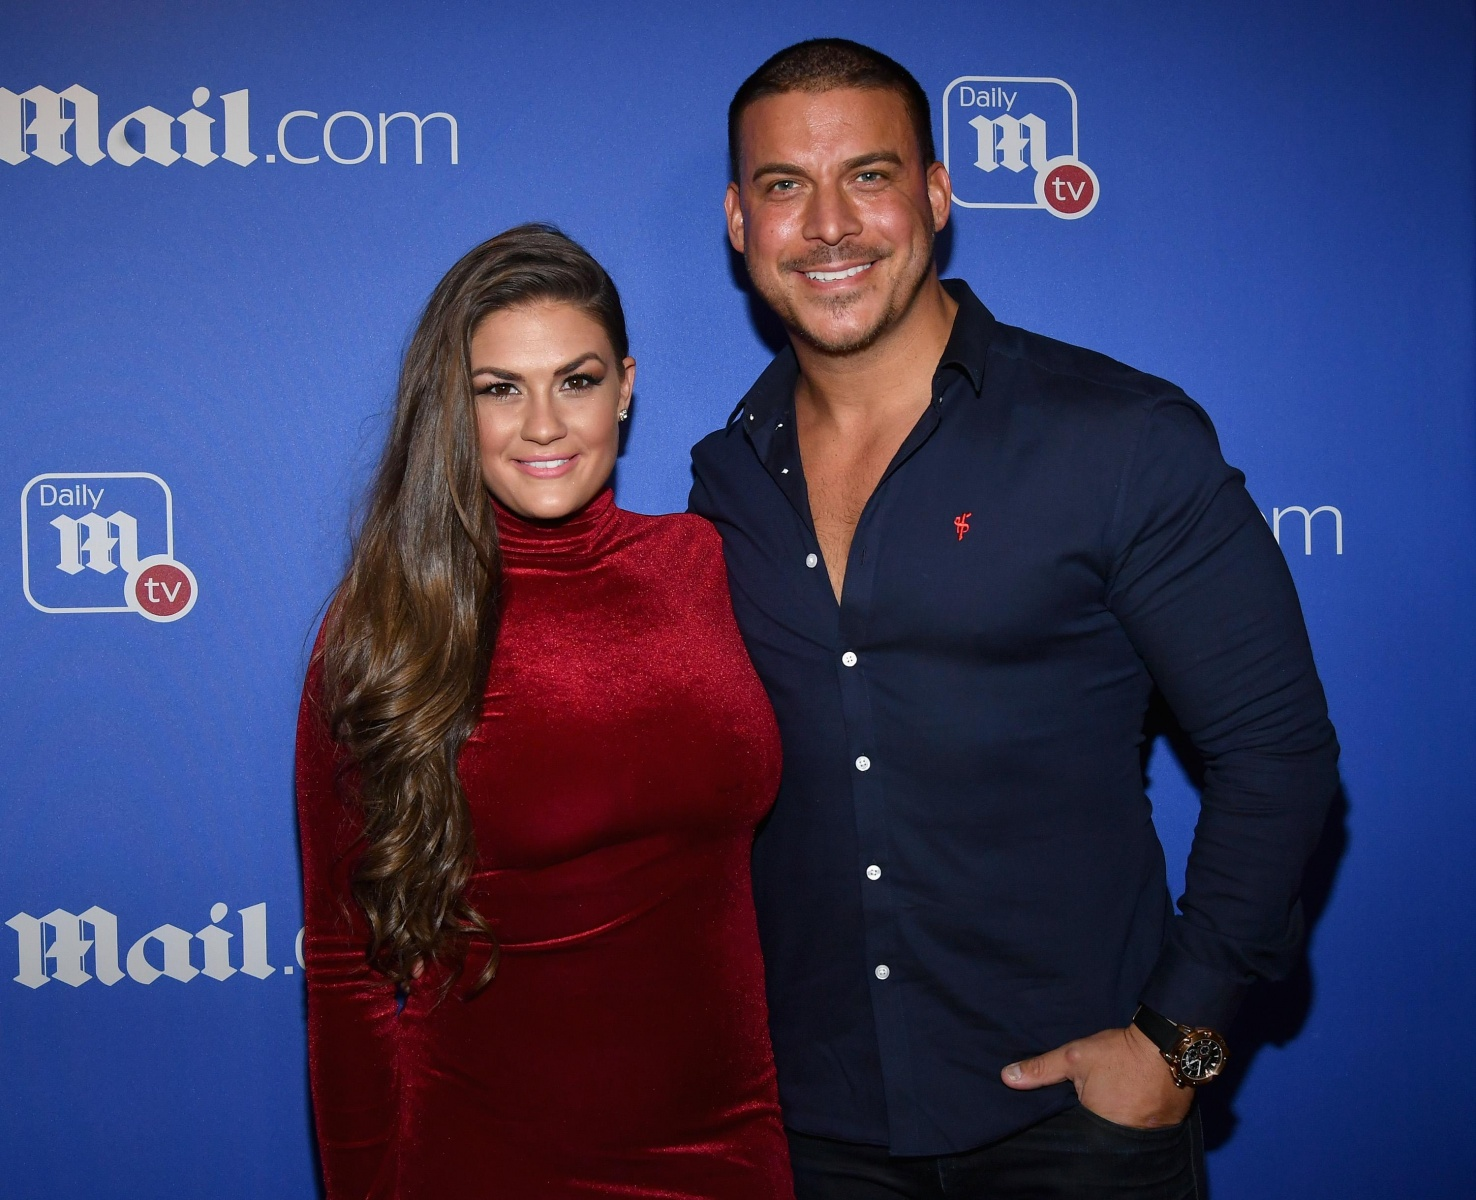 Vanderpump Rules' Jax Taylor Explains Why He Broke Up With Brittany Cartwright